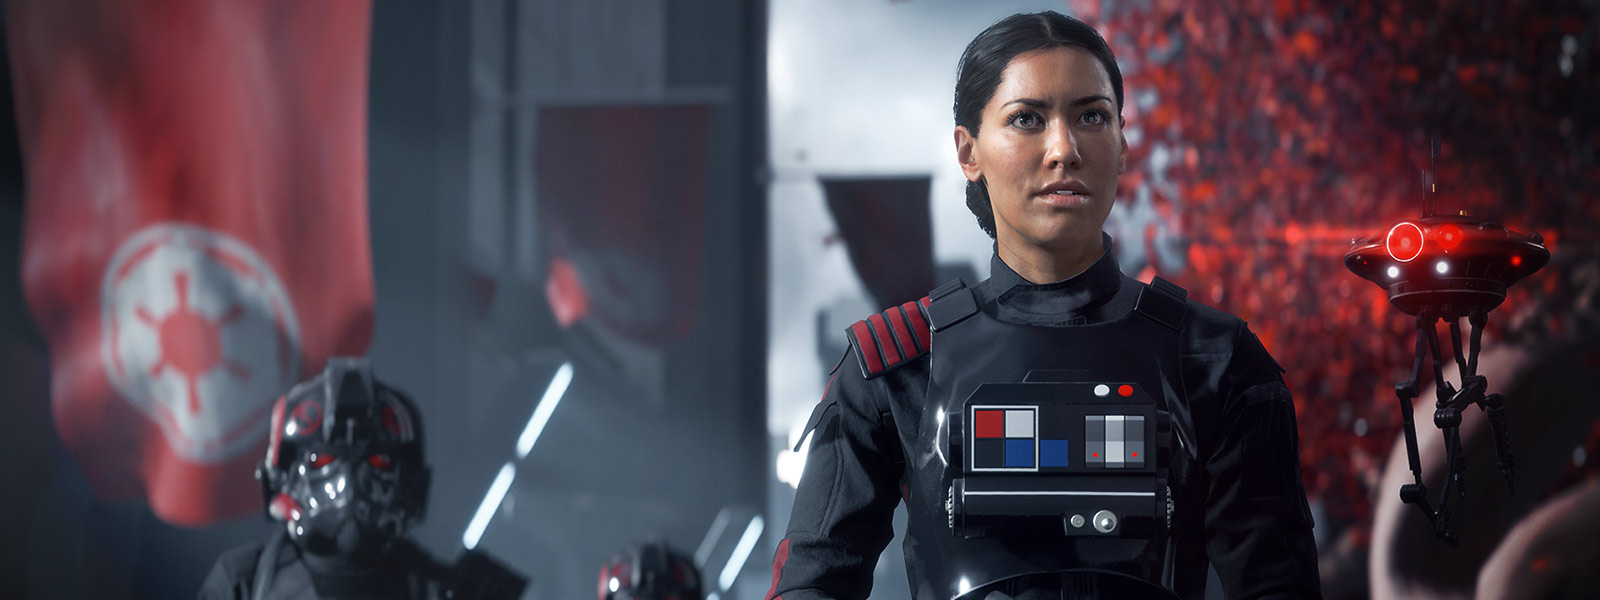 Iden Versio commander of the inferno army